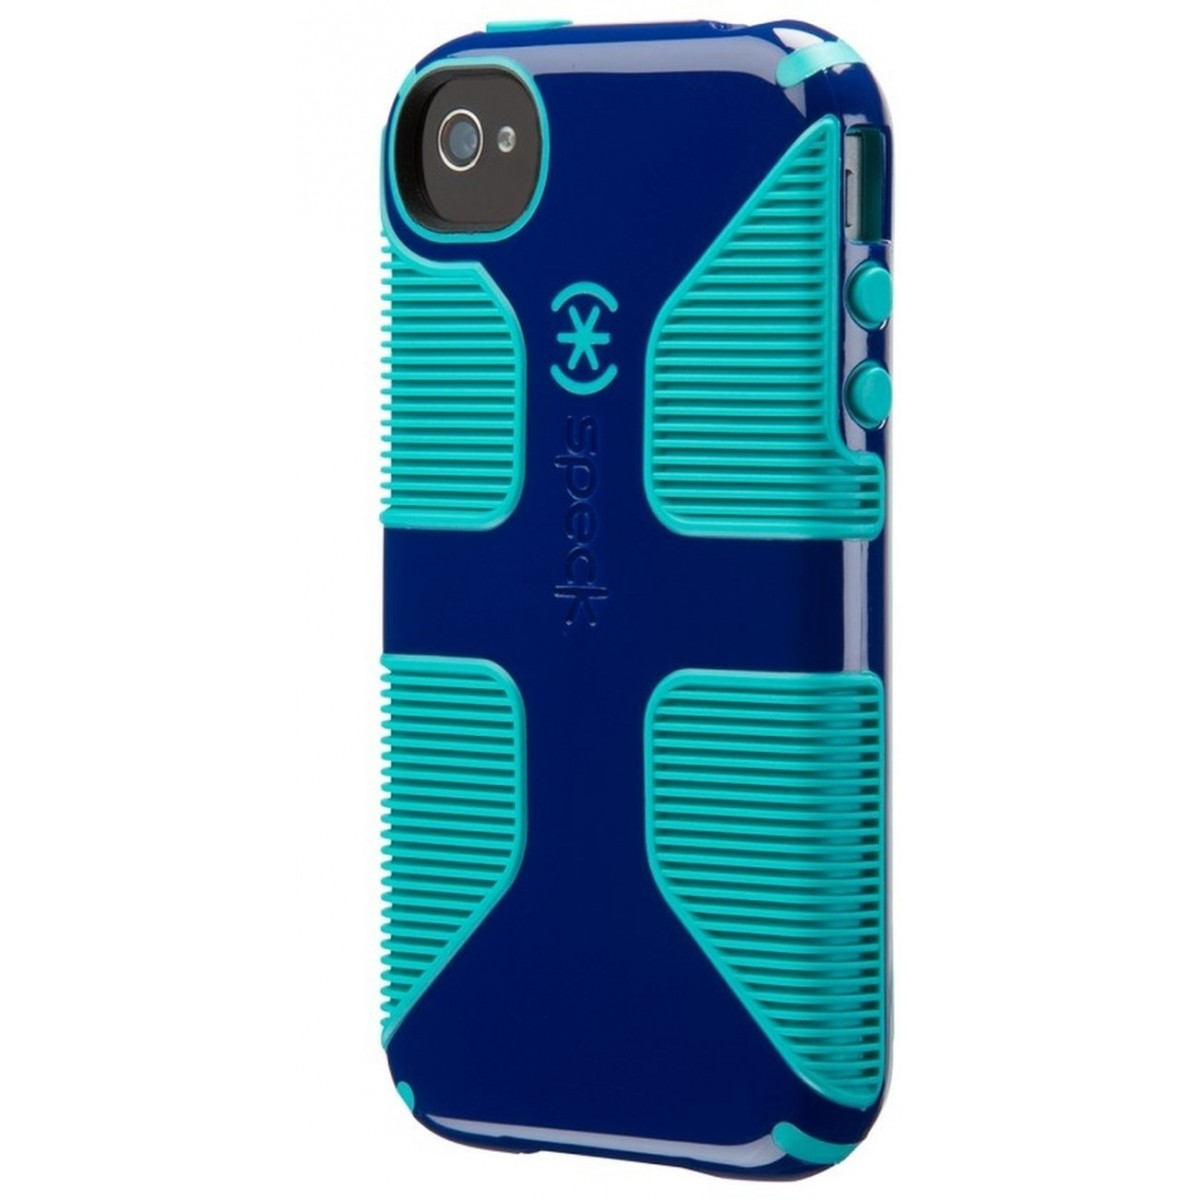 san francisco f4ec0 21ff4 Speck Products CandyShell Grip Case for iPhone 4/4S - Cadet Blue/Caribbean  Blue